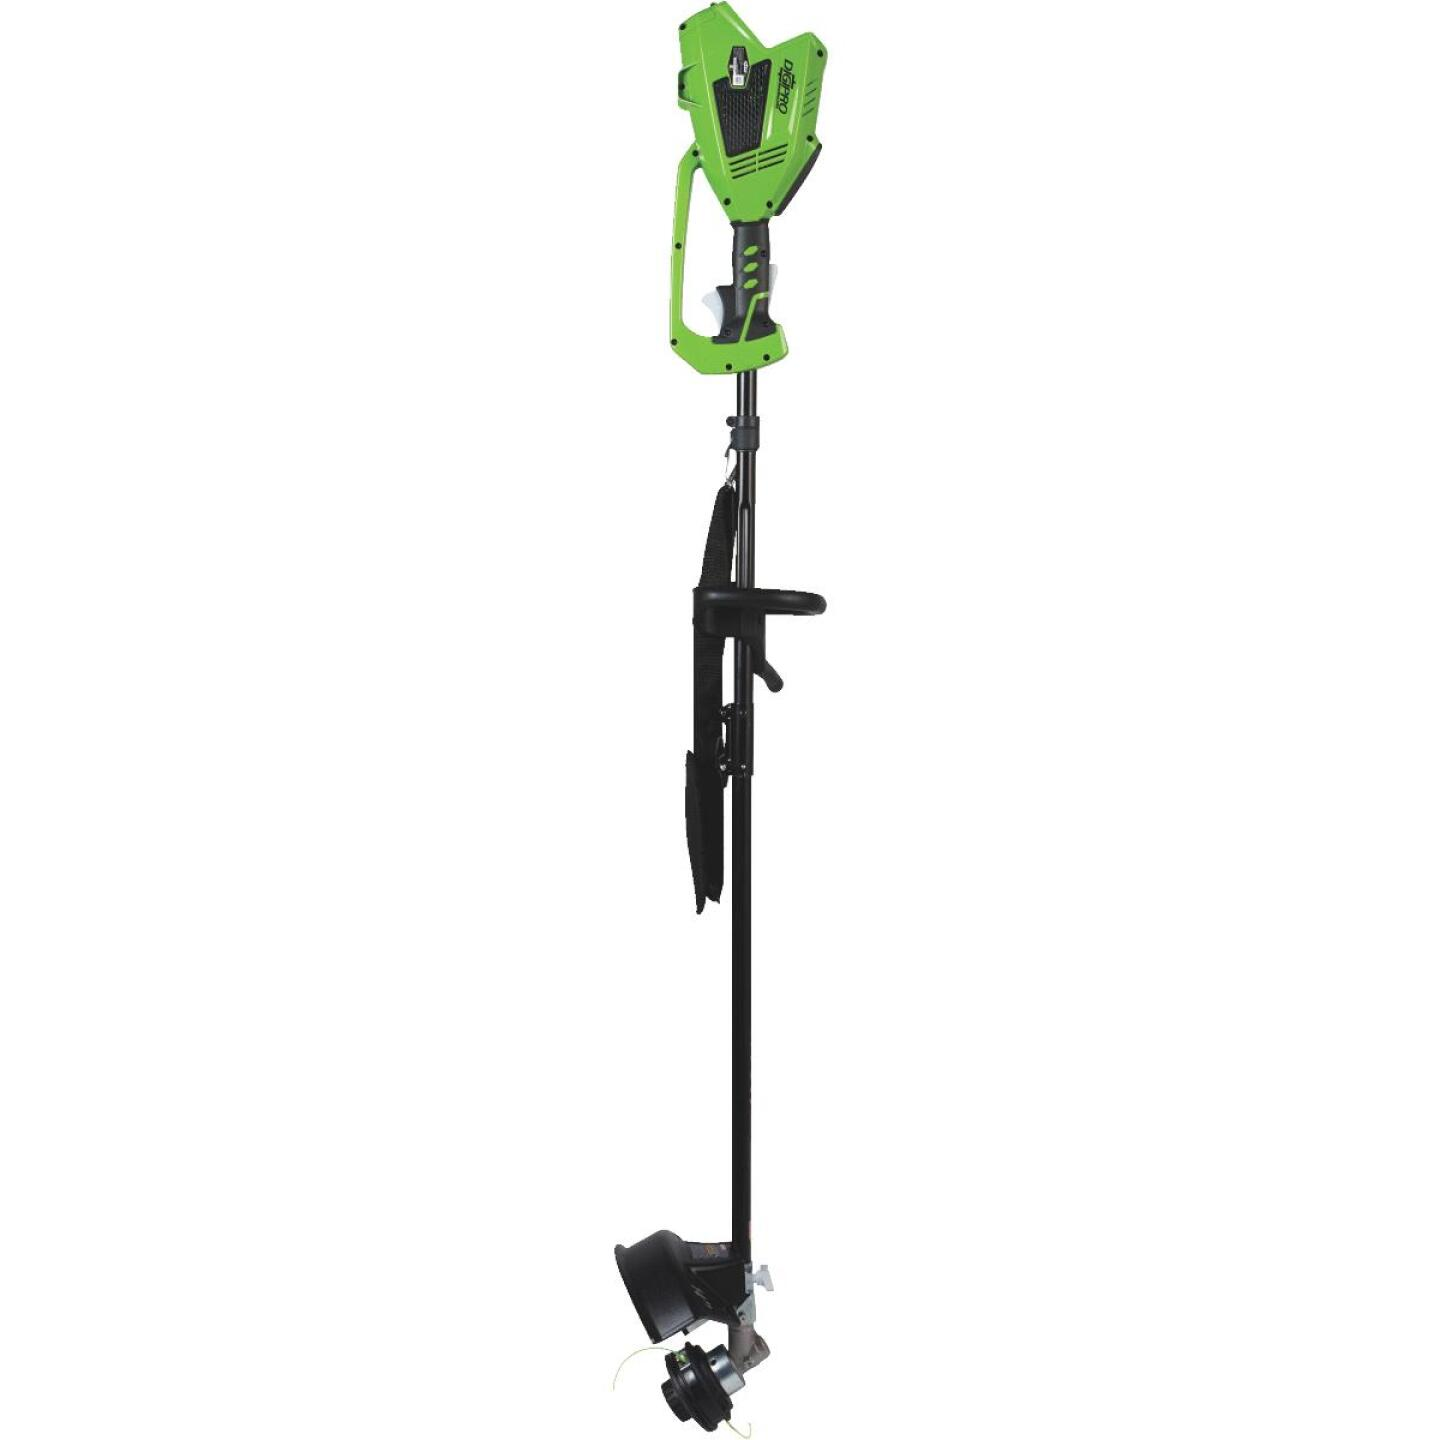 Greenworks G-Max 40V 14 In. Lithium Ion Straight Cordless String Trimmer Image 2